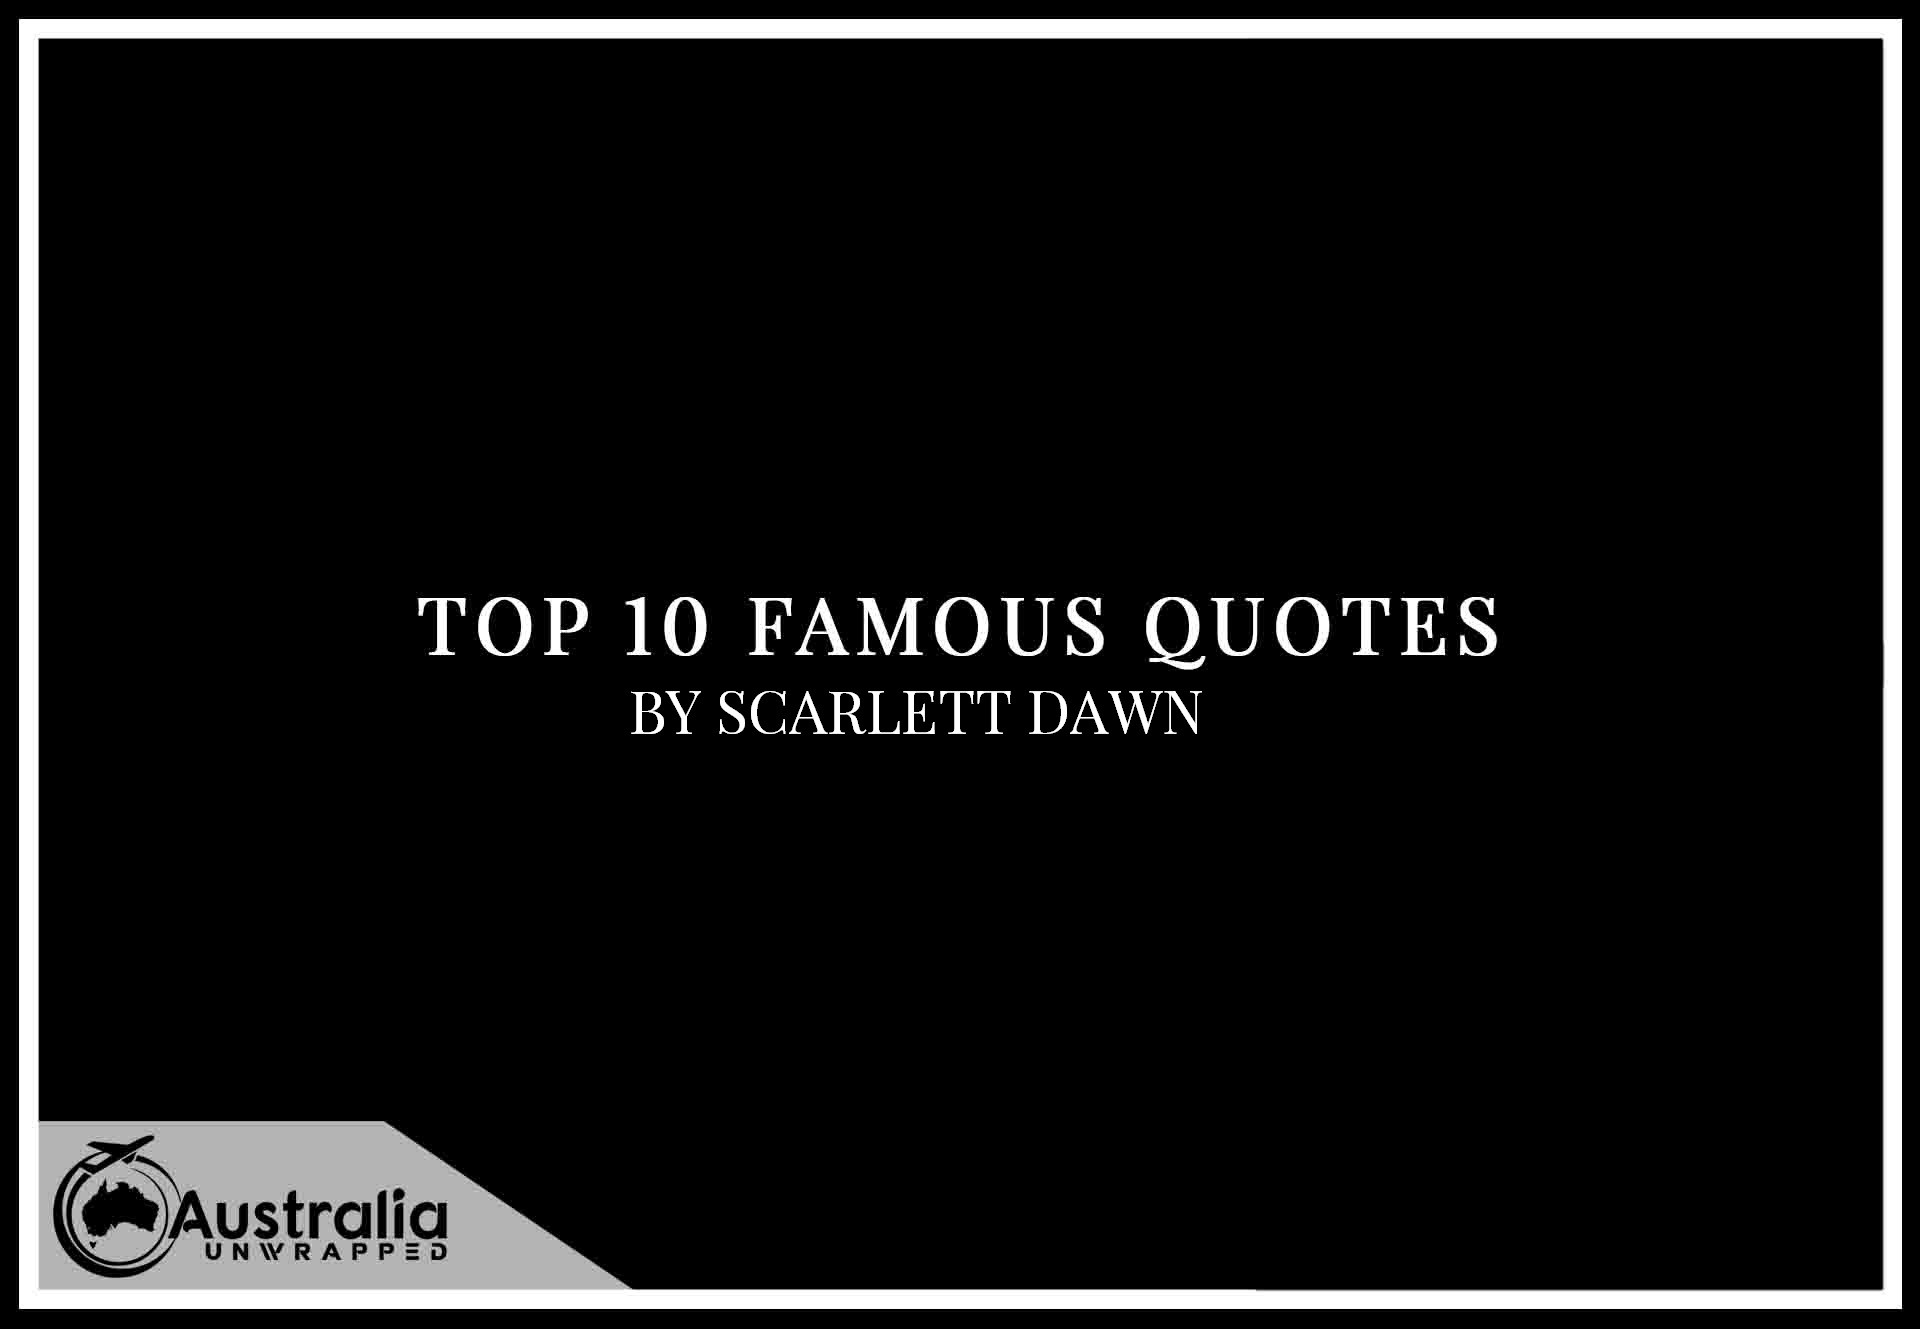 Top 10 Famous Quotes by Author Scarlett Dawn